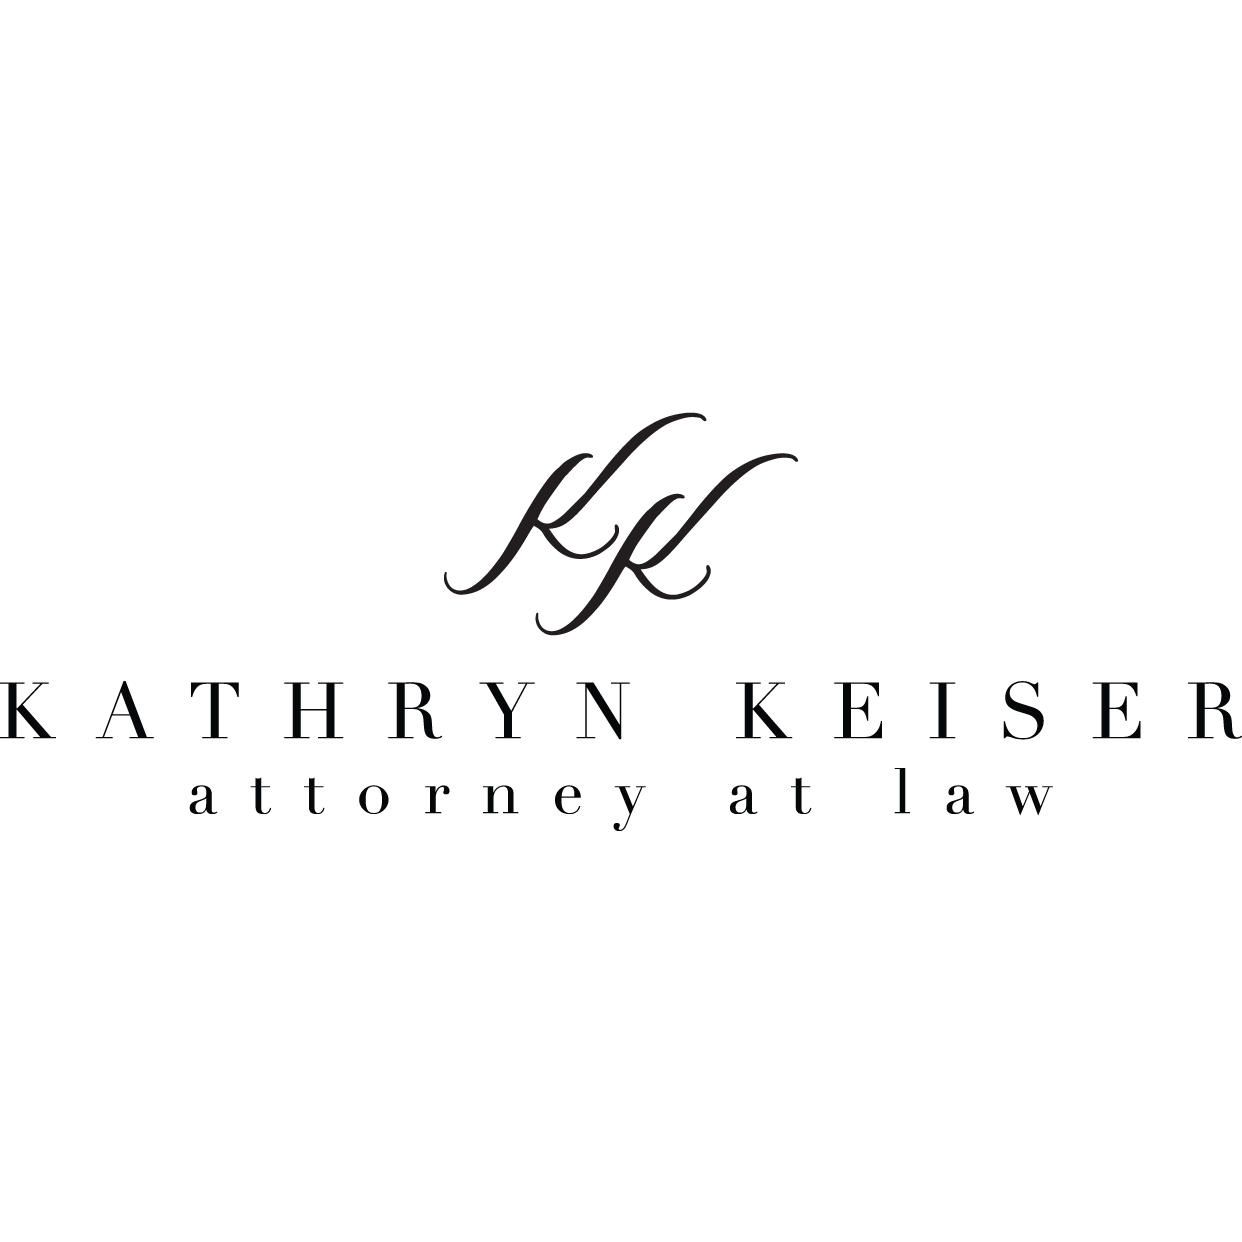 Kathryn Keiser Attorney at Law